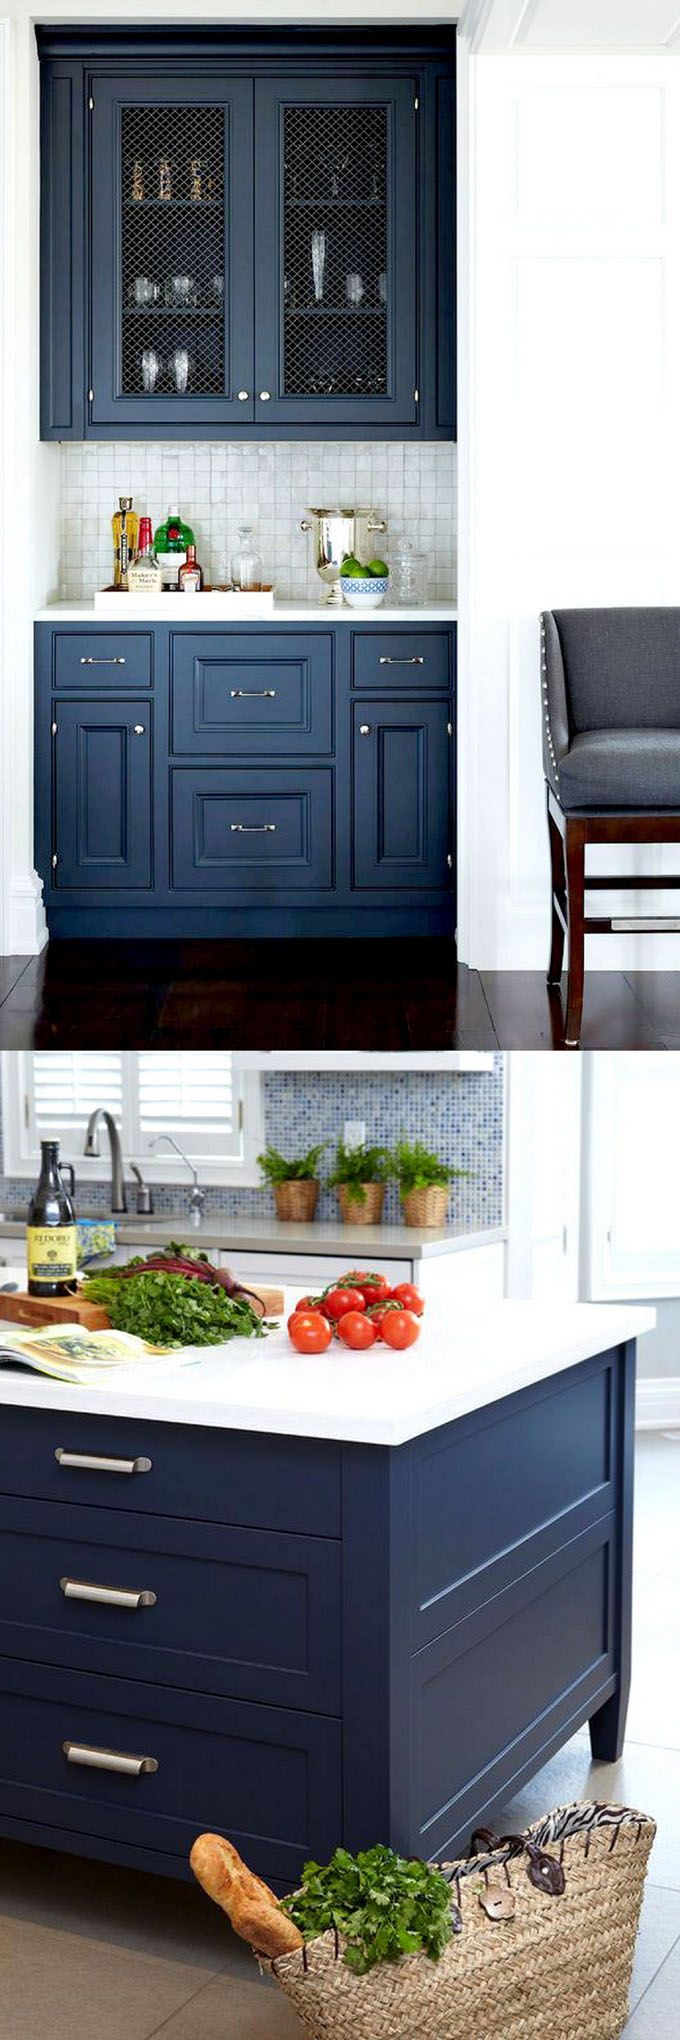 Paint For Kitchen best 20+ navy kitchen ideas on pinterest | navy kitchen cabinets